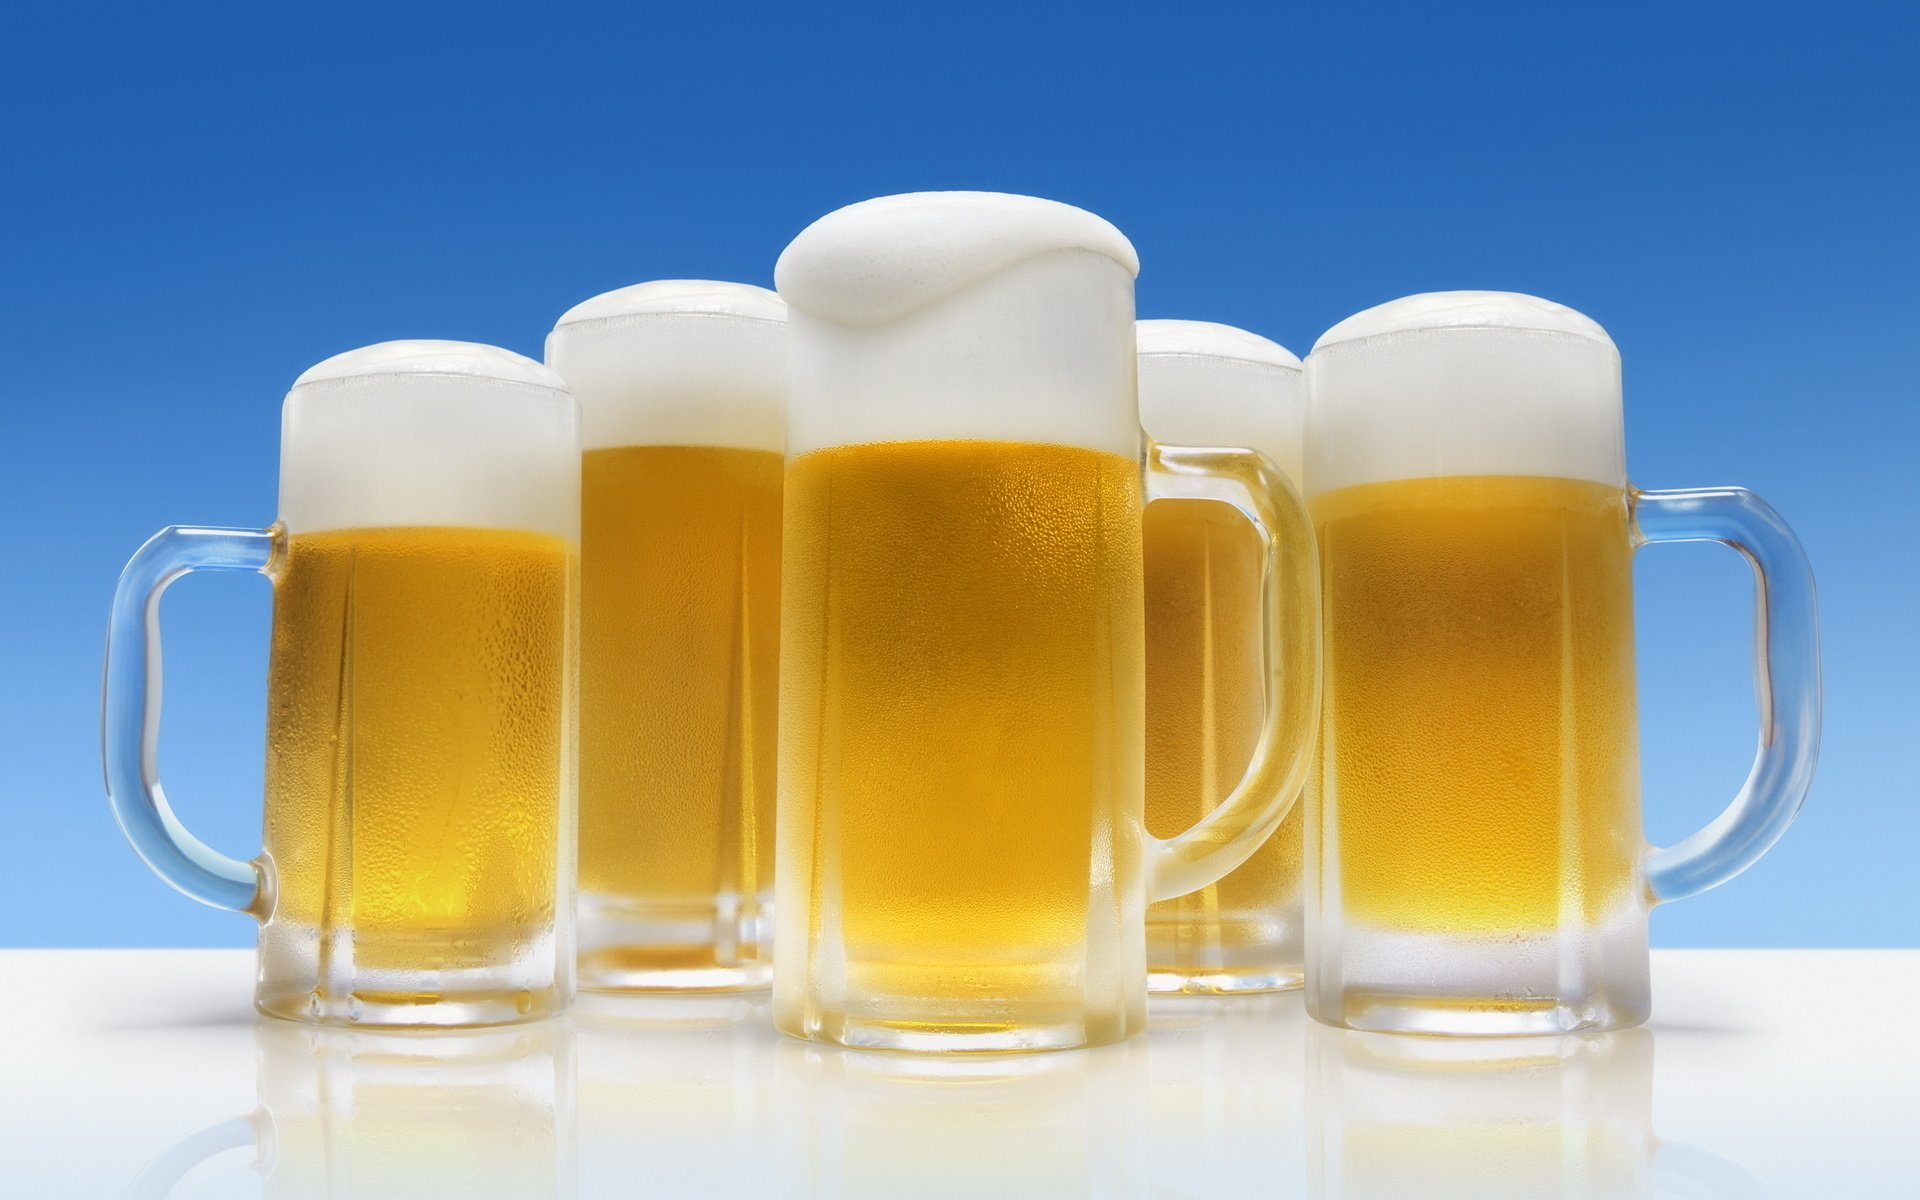 298 Beer Hd Wallpapers Background Images Wallpaper Abyss